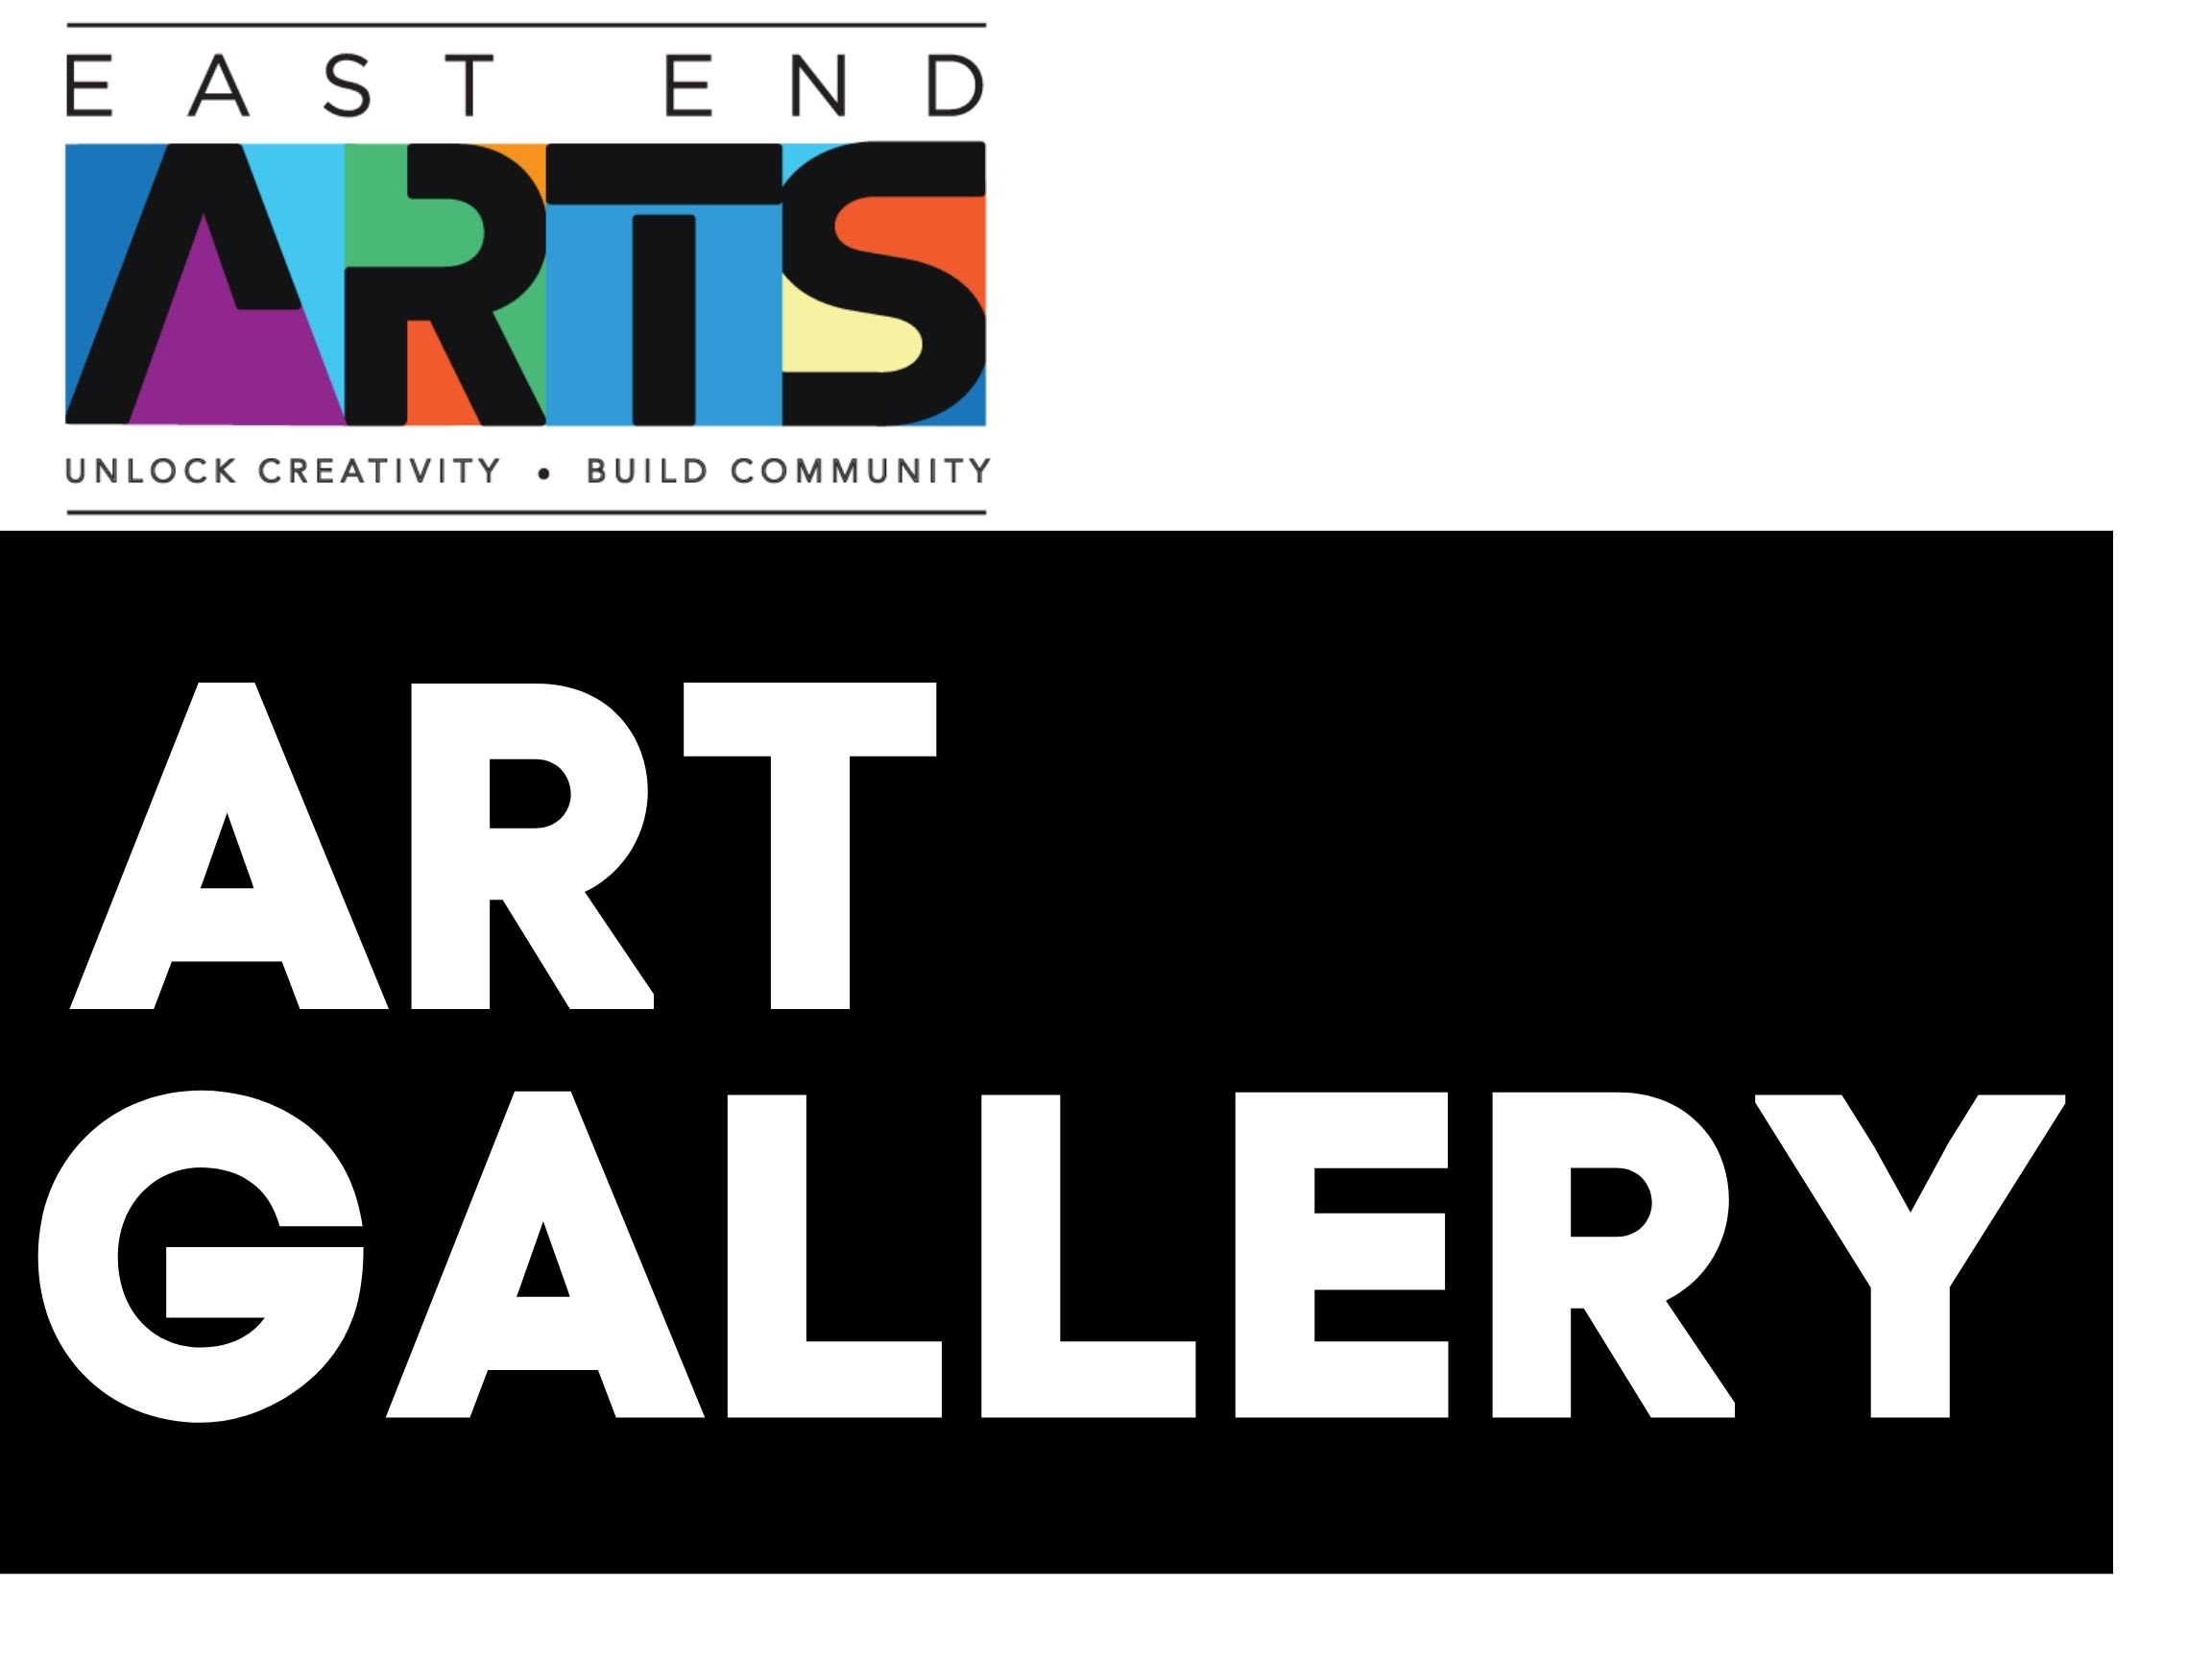 East End Arts